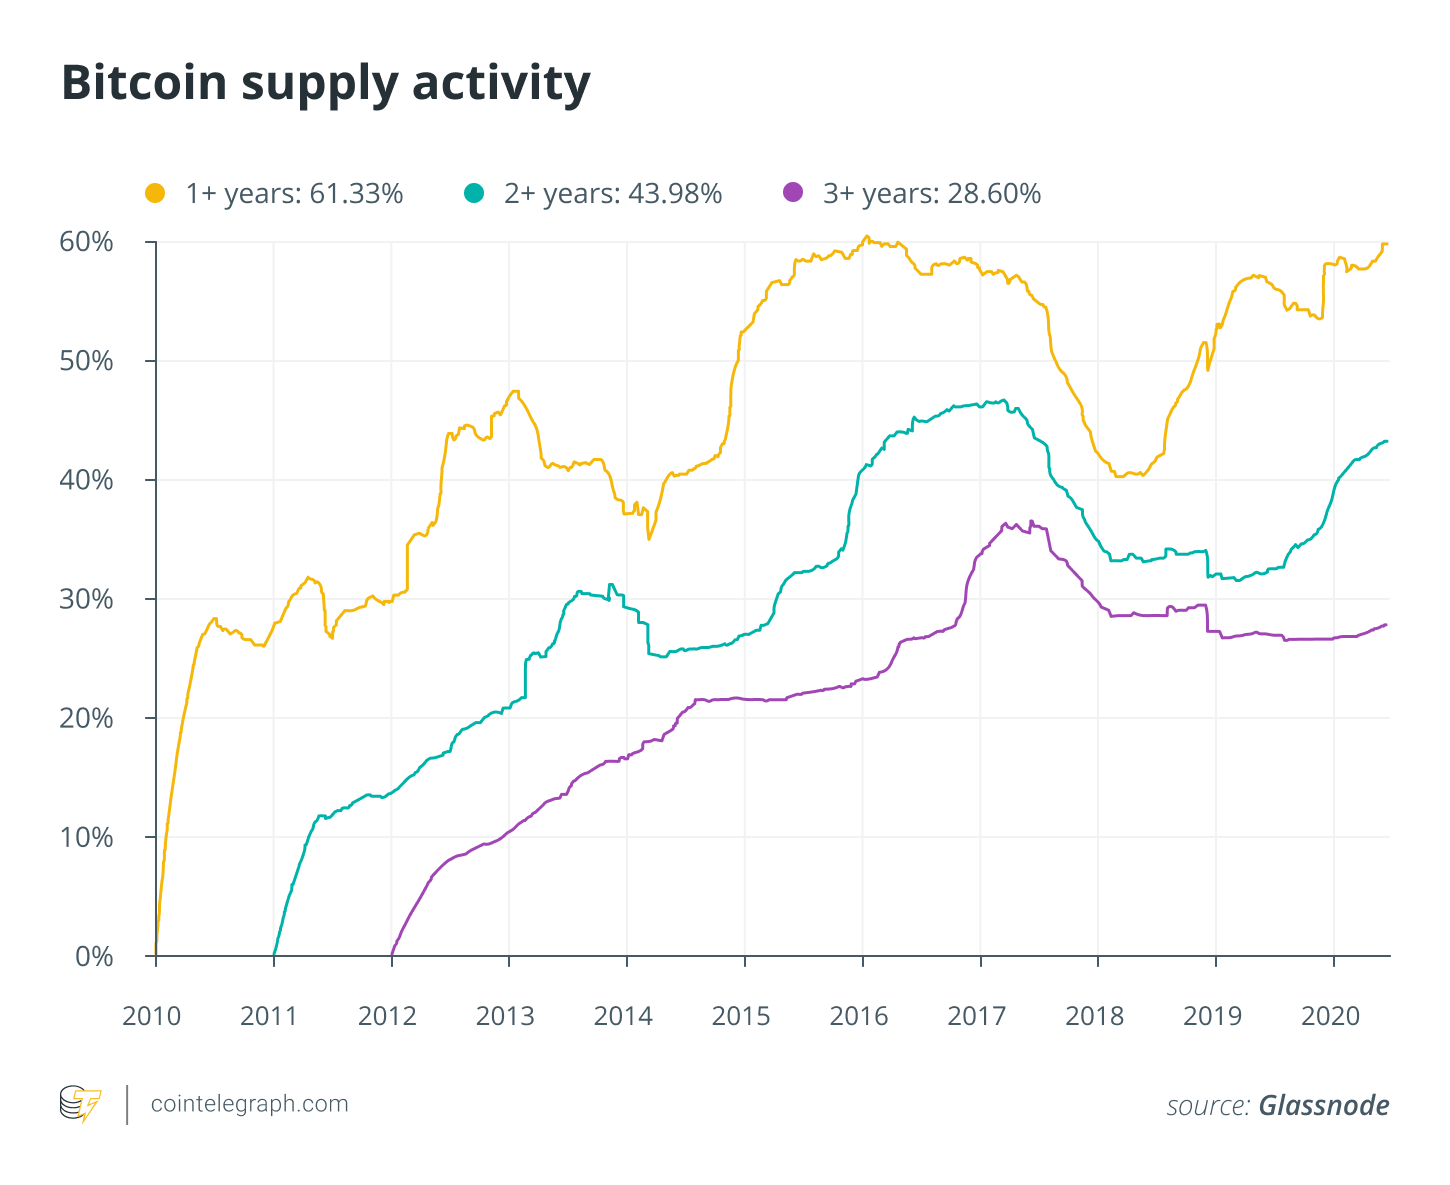 Bitcoin supply activity